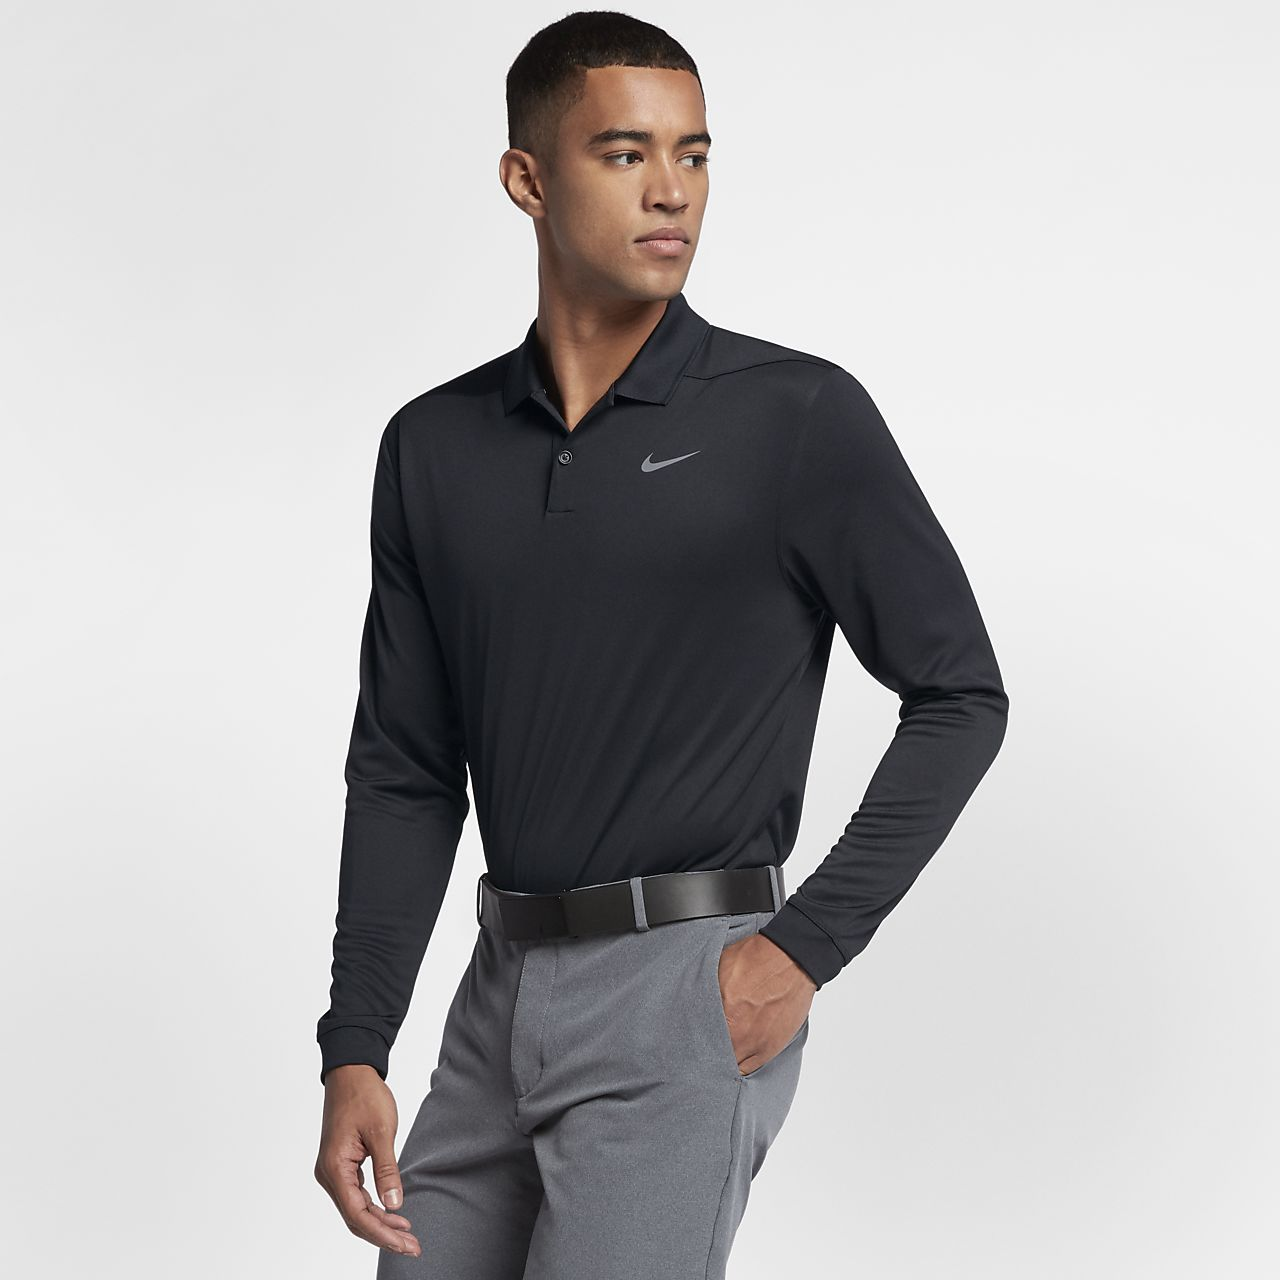 ... Nike Dri-FIT Victory Men's Long-Sleeve Standard Fit Golf Polo